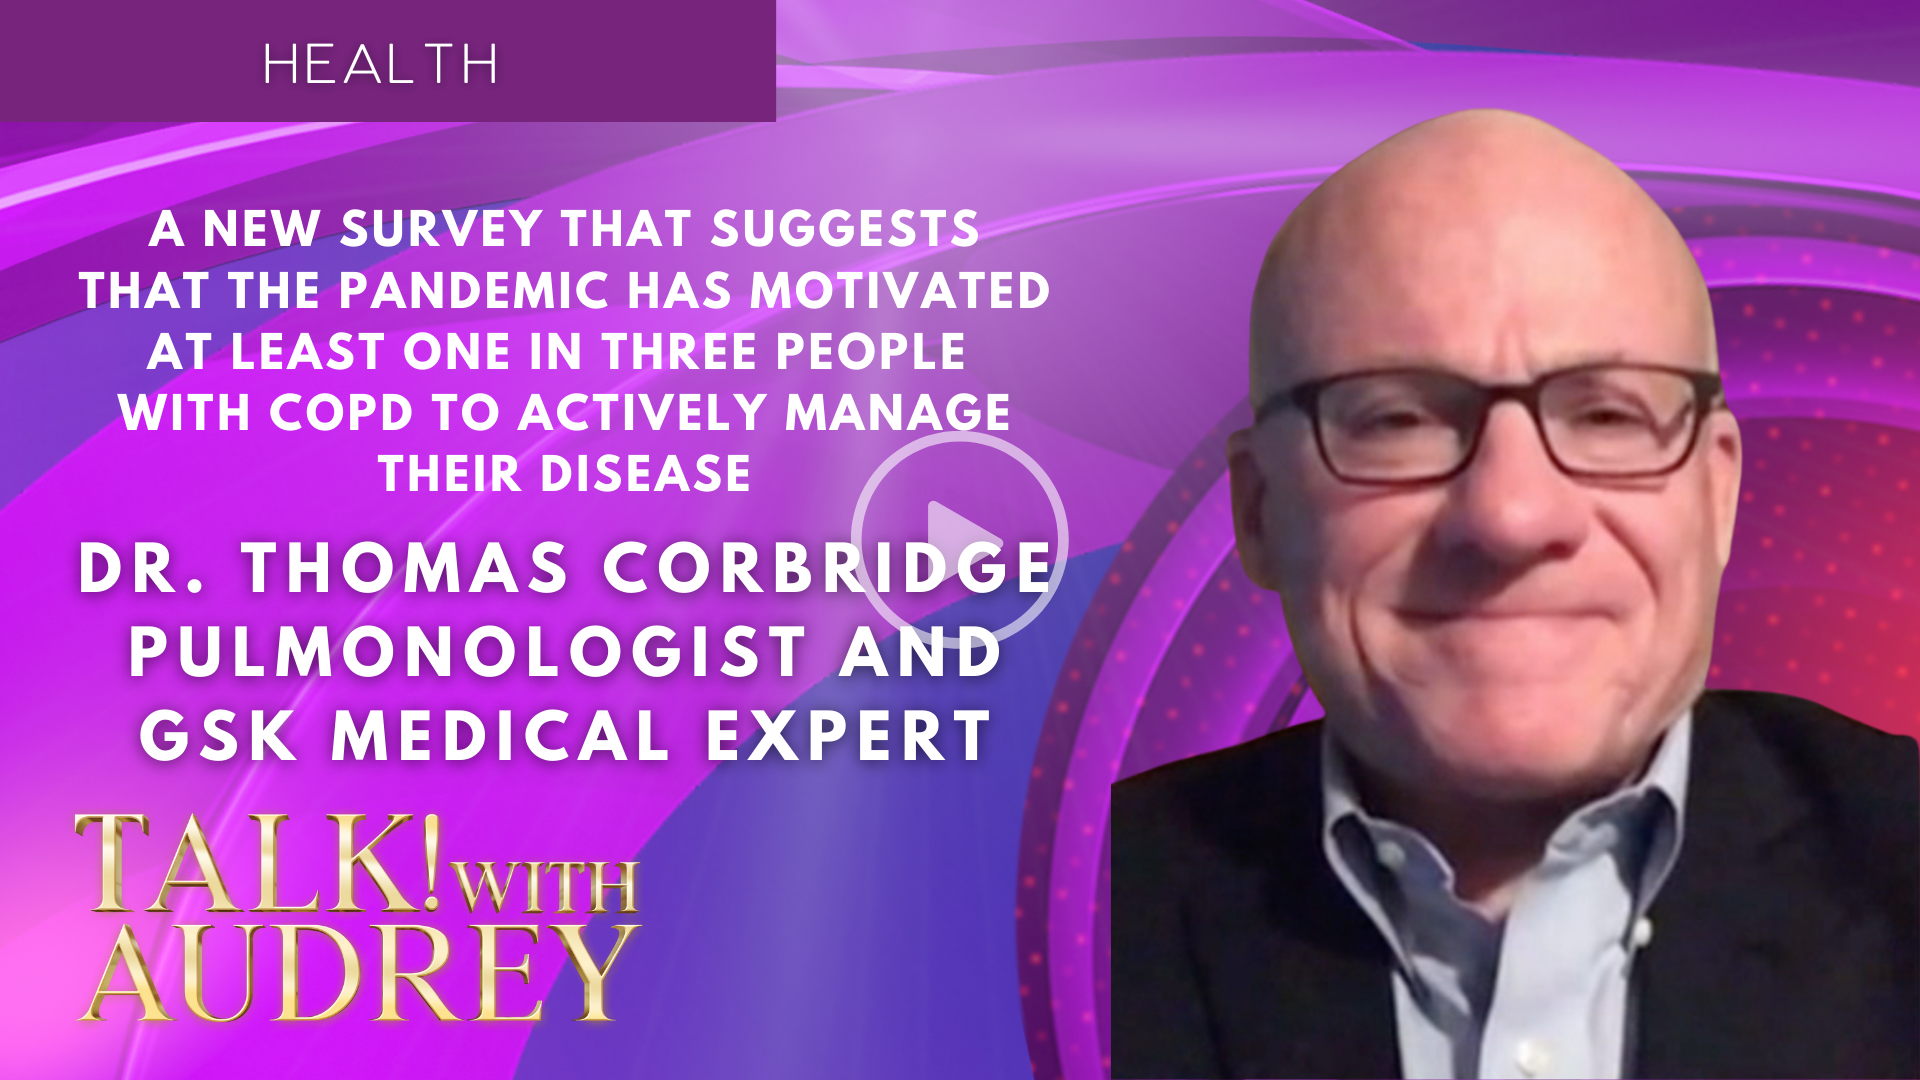 Dr. Thomas Corbridge – A New Survey That Suggests That The Pandemic has Motivated at Least One in Three People with COPD to Actively Manage their Disease